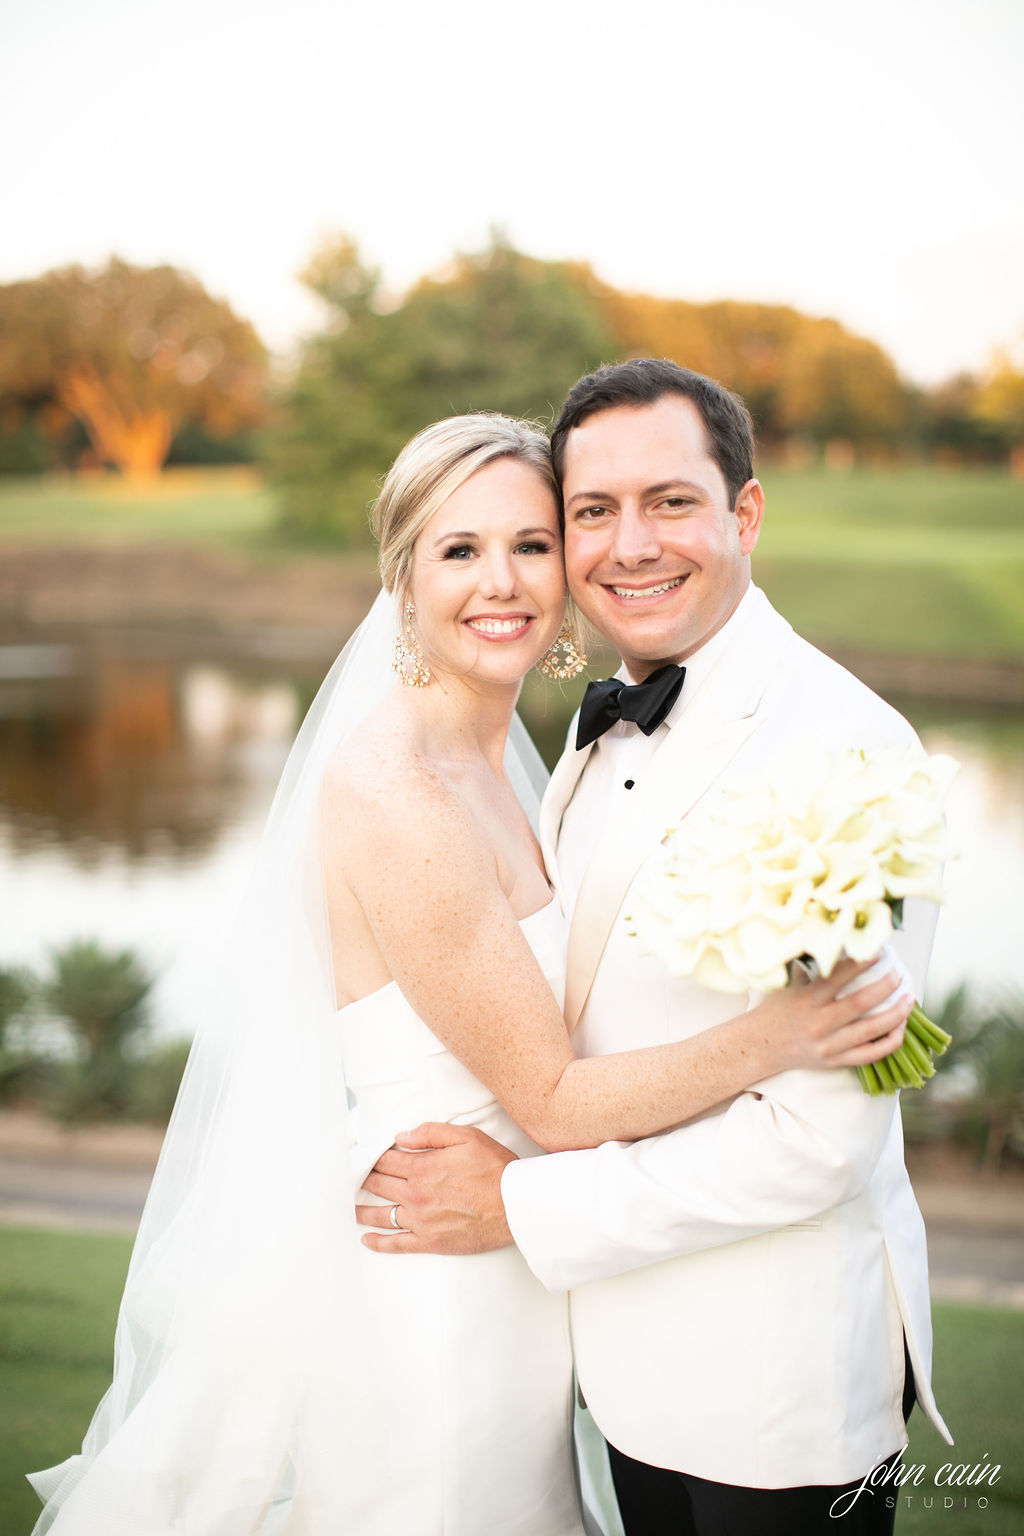 Dallas Country Club Wedding - Timeless Dallas Wedding - Wedding Planner in Dallas - Allday Events - Portraits - 103.JPG